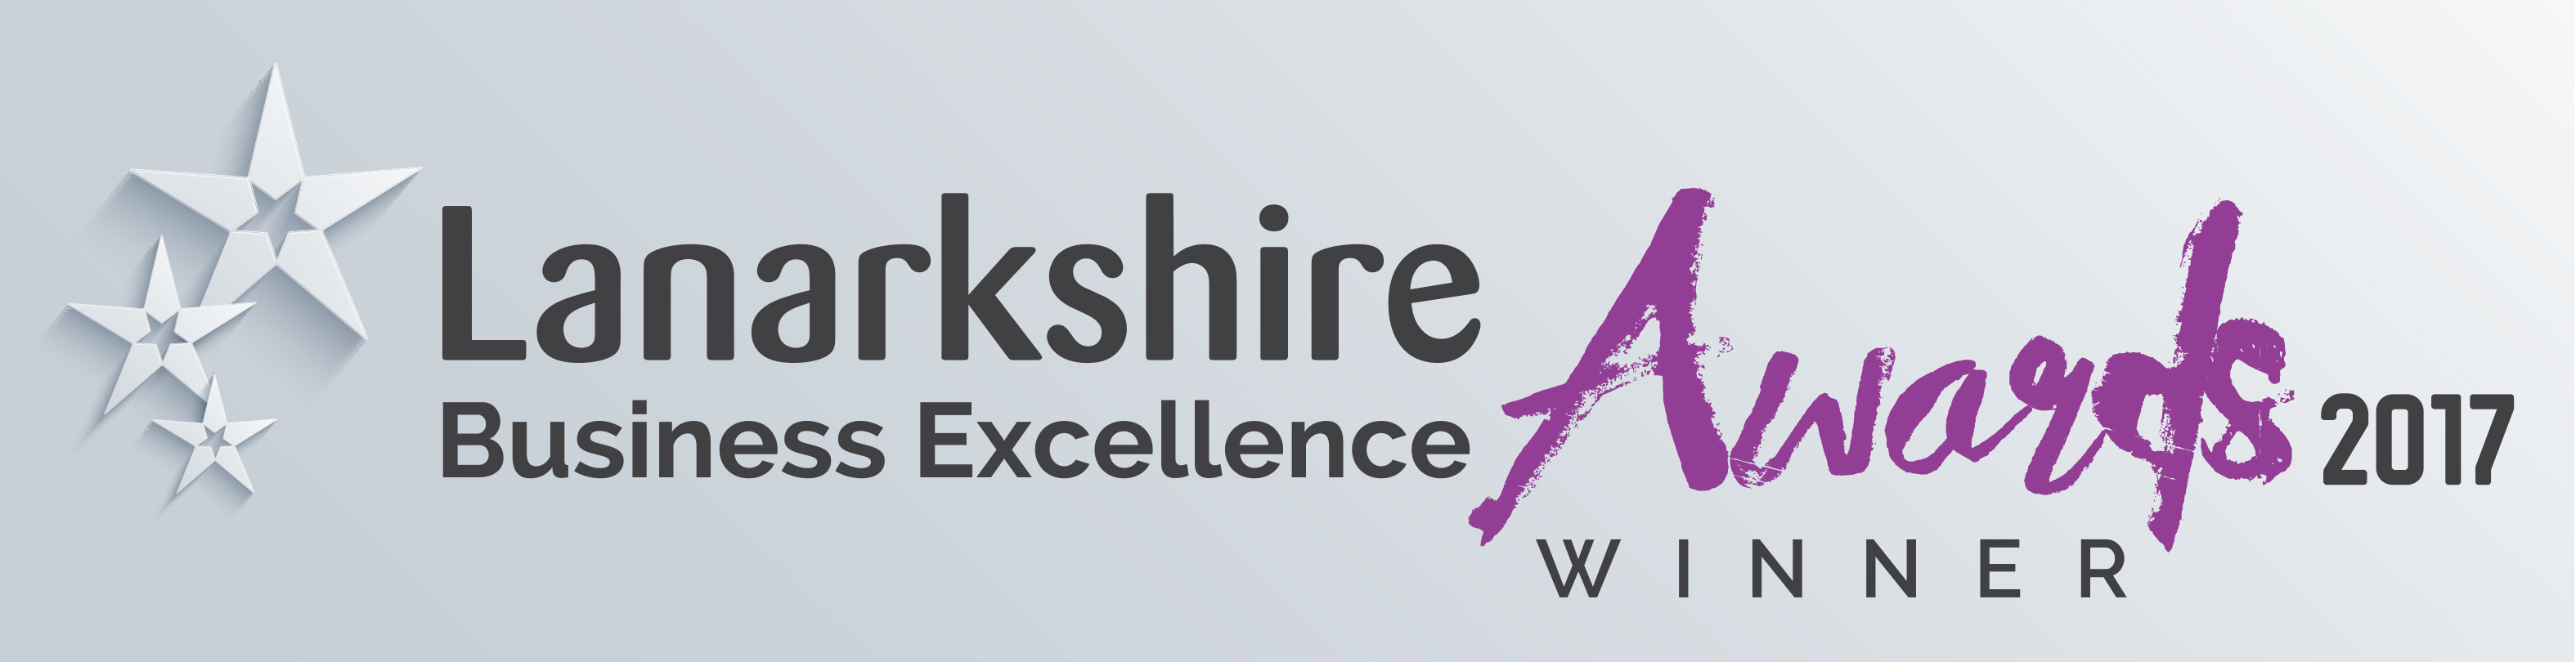 Lanarkshire Business Awards 2017 Winner Logo